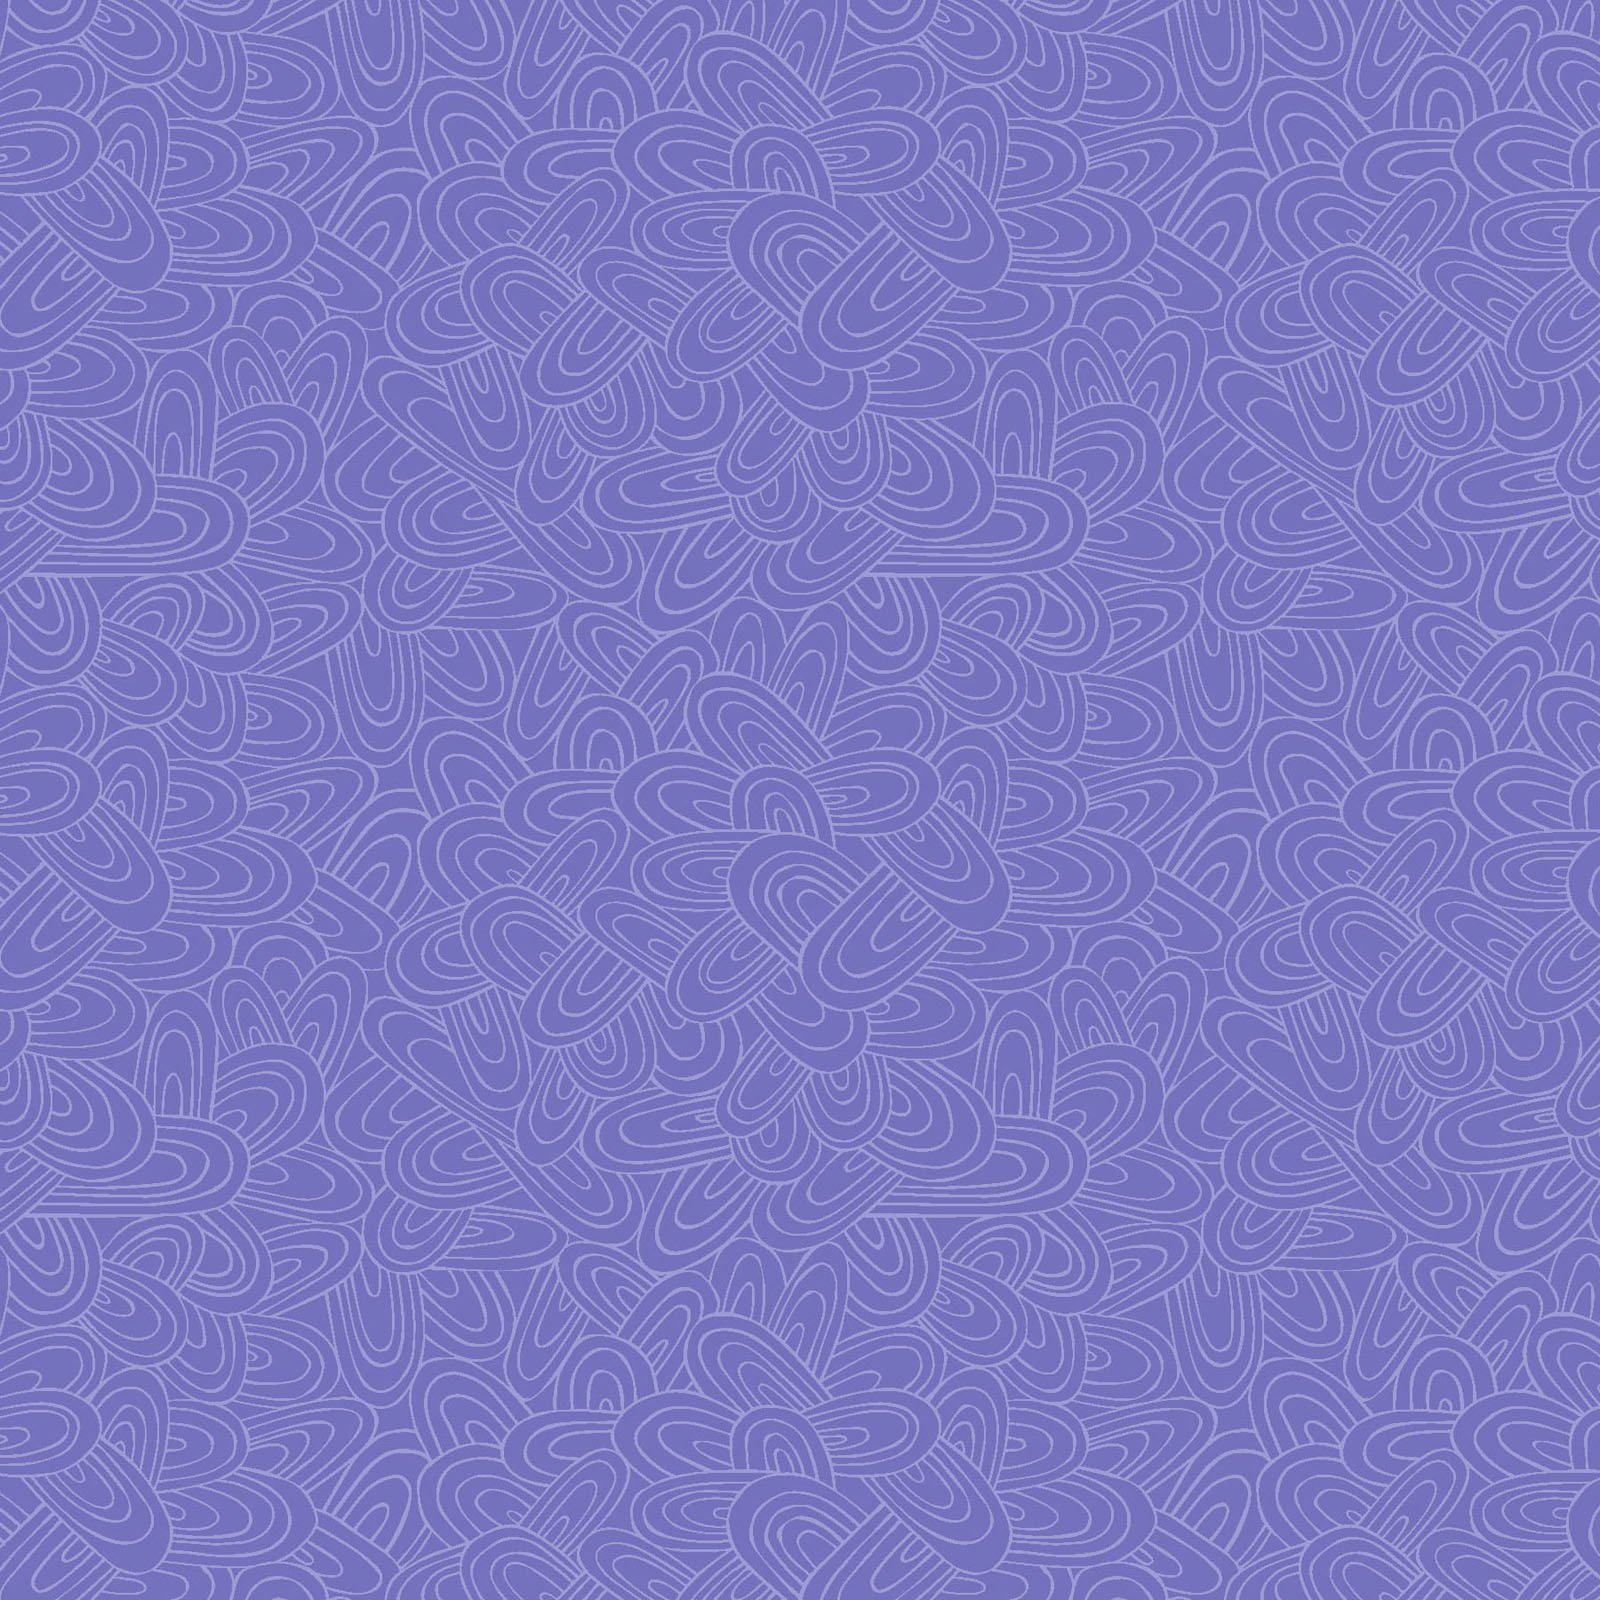 WHIM-4412 BV - WHIMSY BY HANG TIGHT STUDIO JUST SWELL BLUE/VIOLET